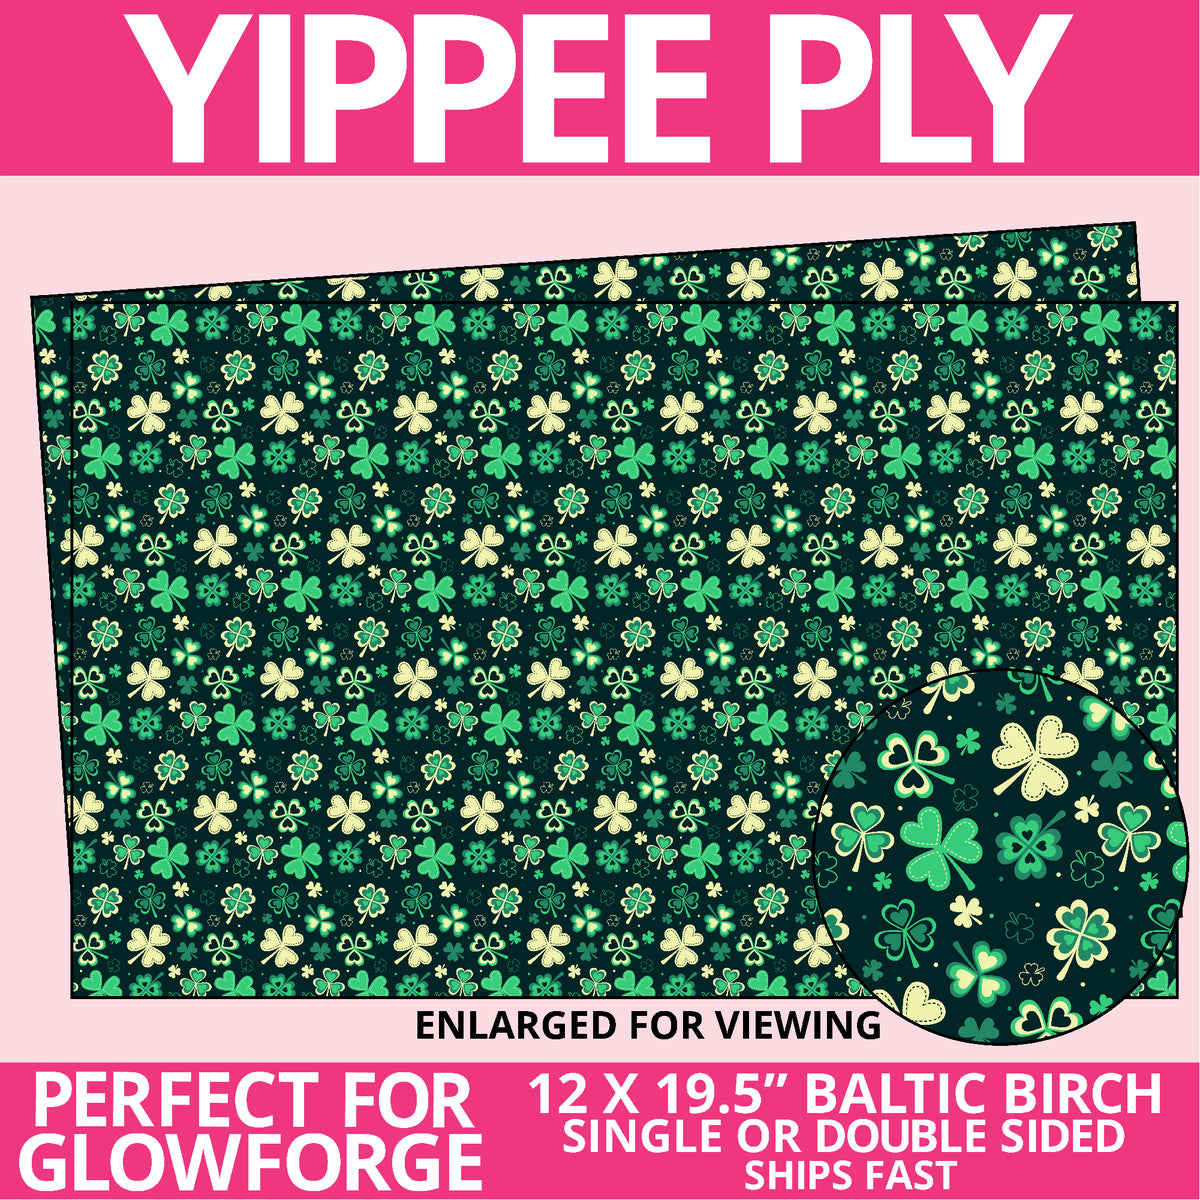 Yippee Ply Feeling Lucky Pattern on Birch Plywood 1024